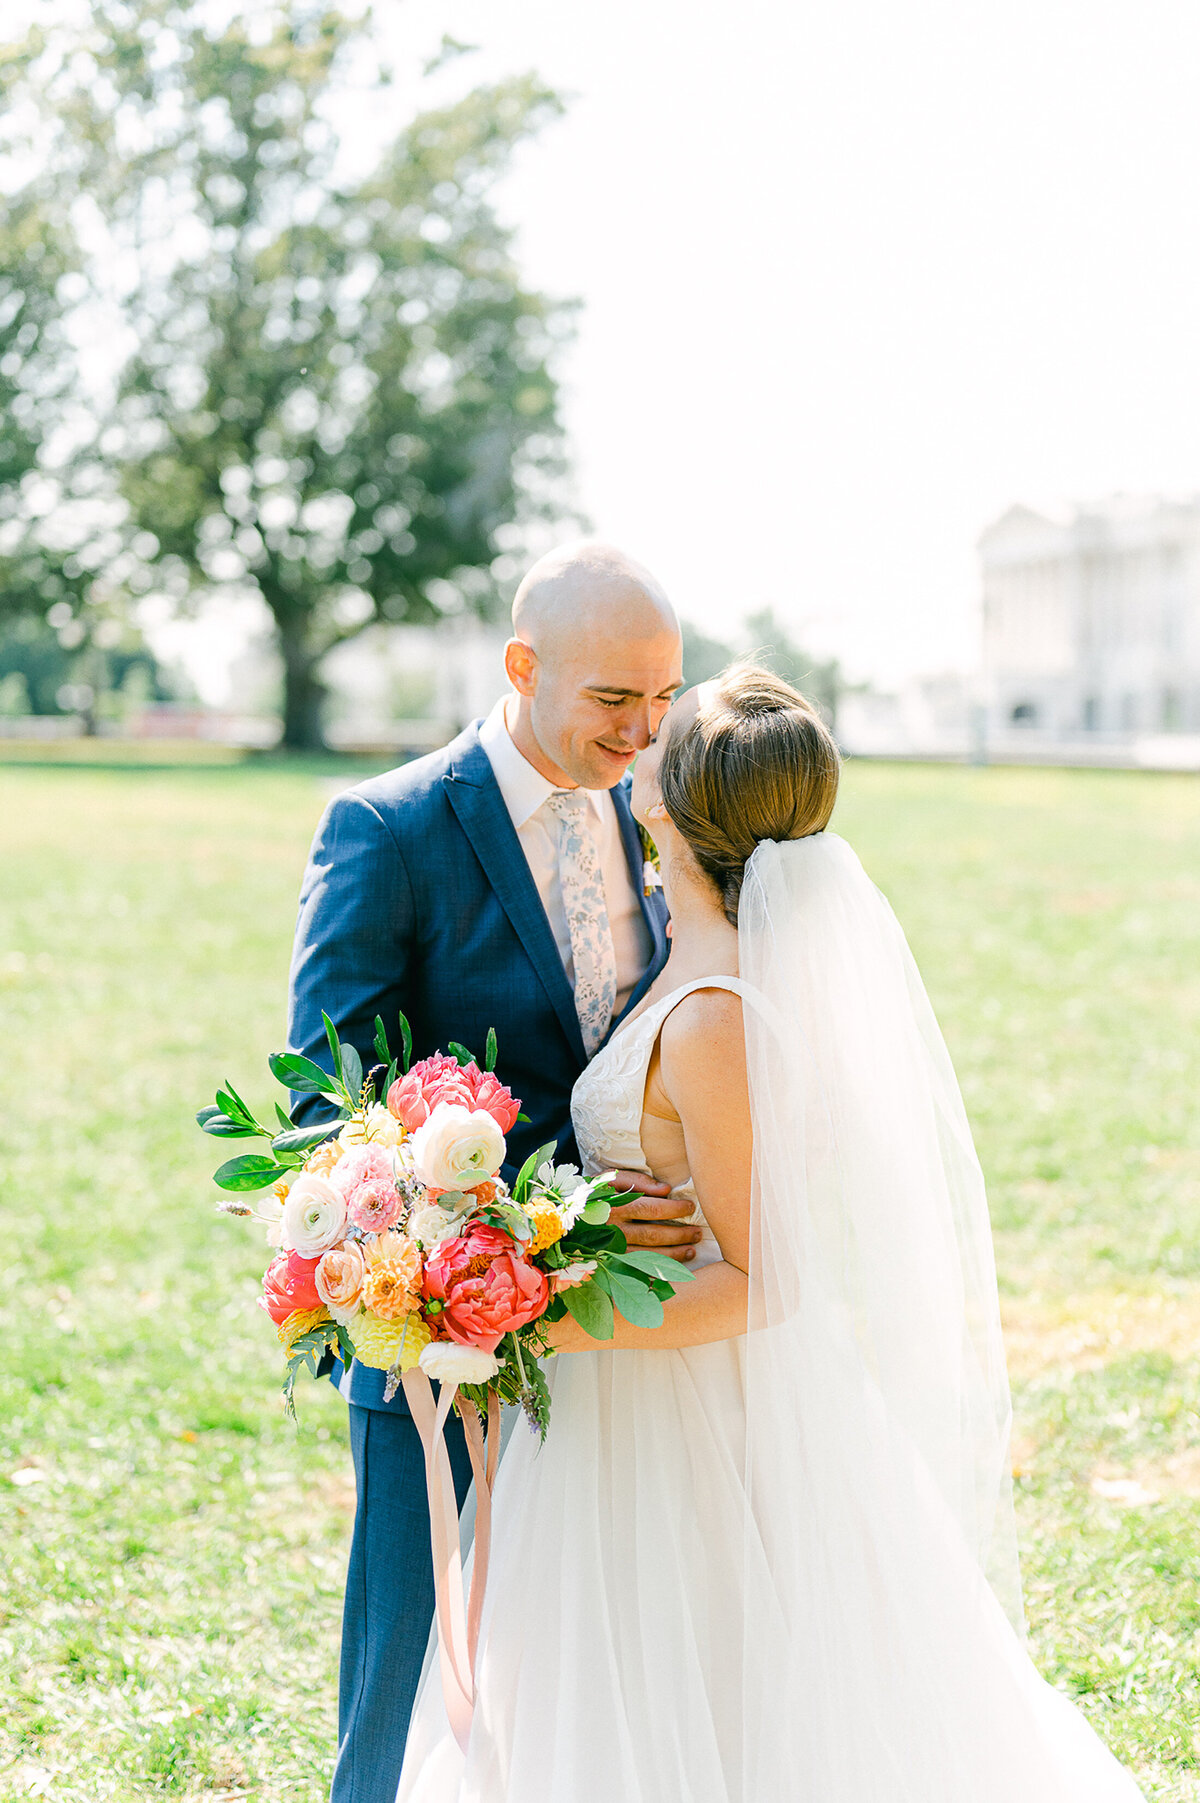 Jennifer Bosak Photography - DC Area Wedding Photography - DC, Virginia, Maryland - Jeanna + Michael - Decatur House Wedding - 67